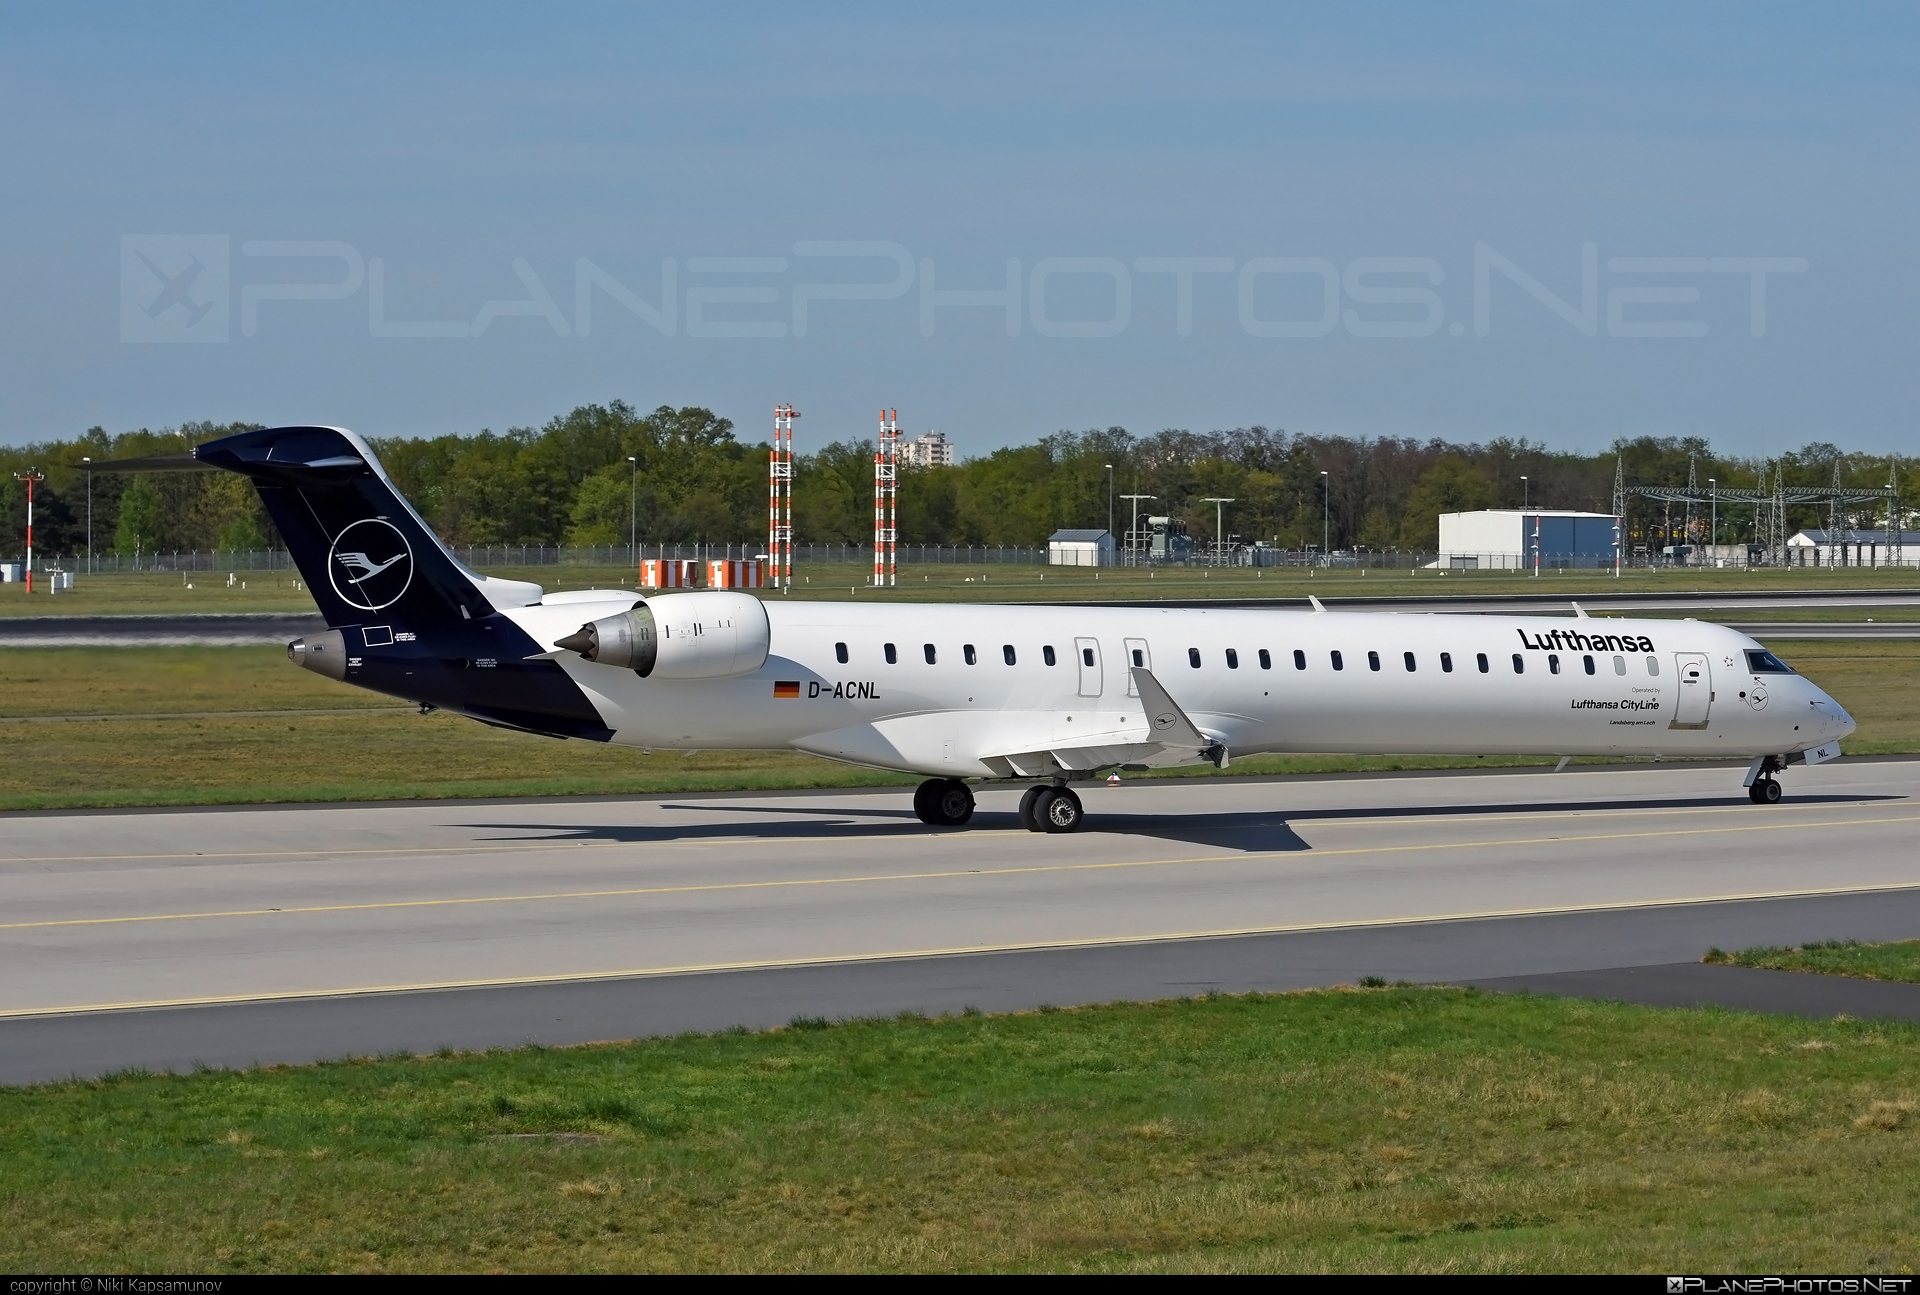 Bombardier CRJ900LR - D-ACNL operated by Lufthansa CityLine #bombardier #crj900 #crj900lr #lufthansa #lufthansacityline